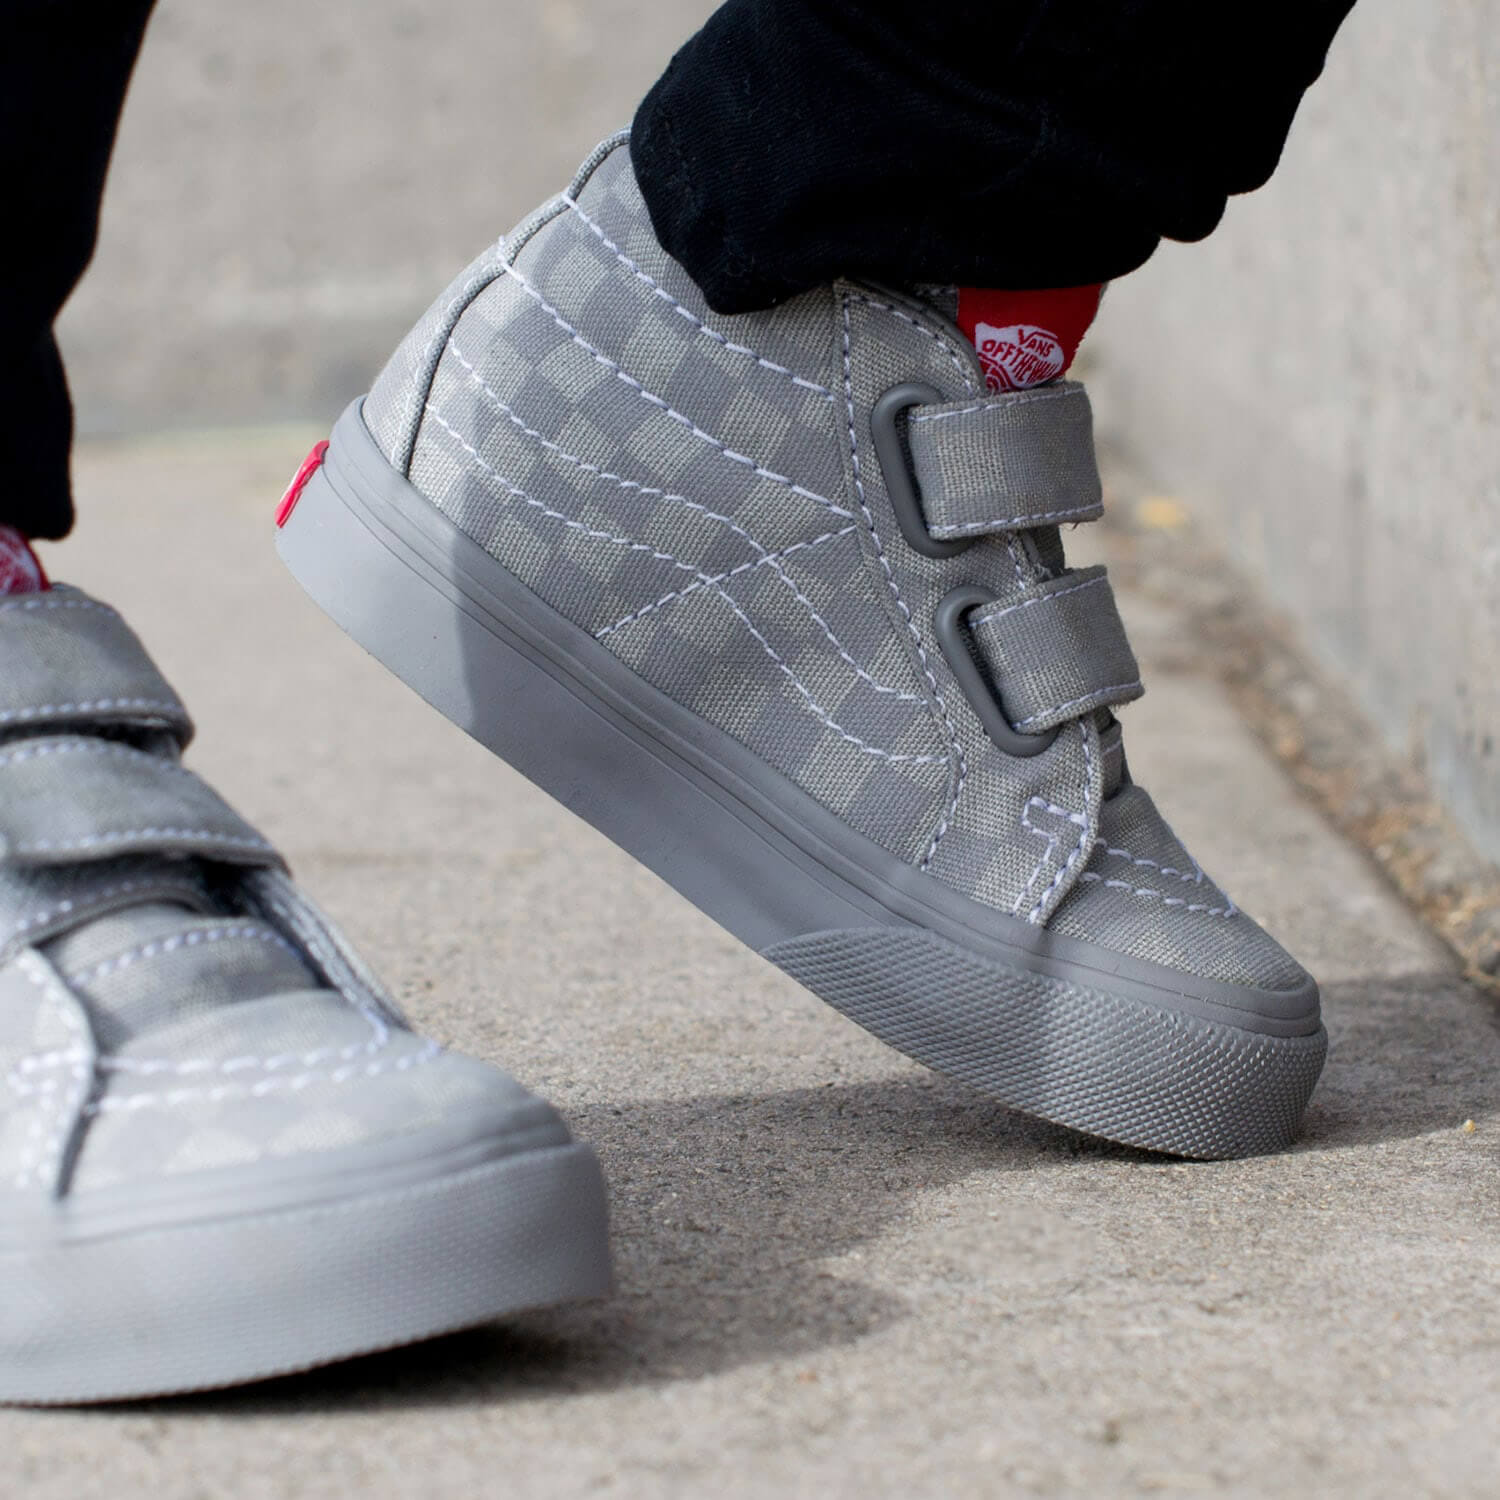 Vans Toddler SK8 Mid Rise Sneaker - Grey Checkerboard Side